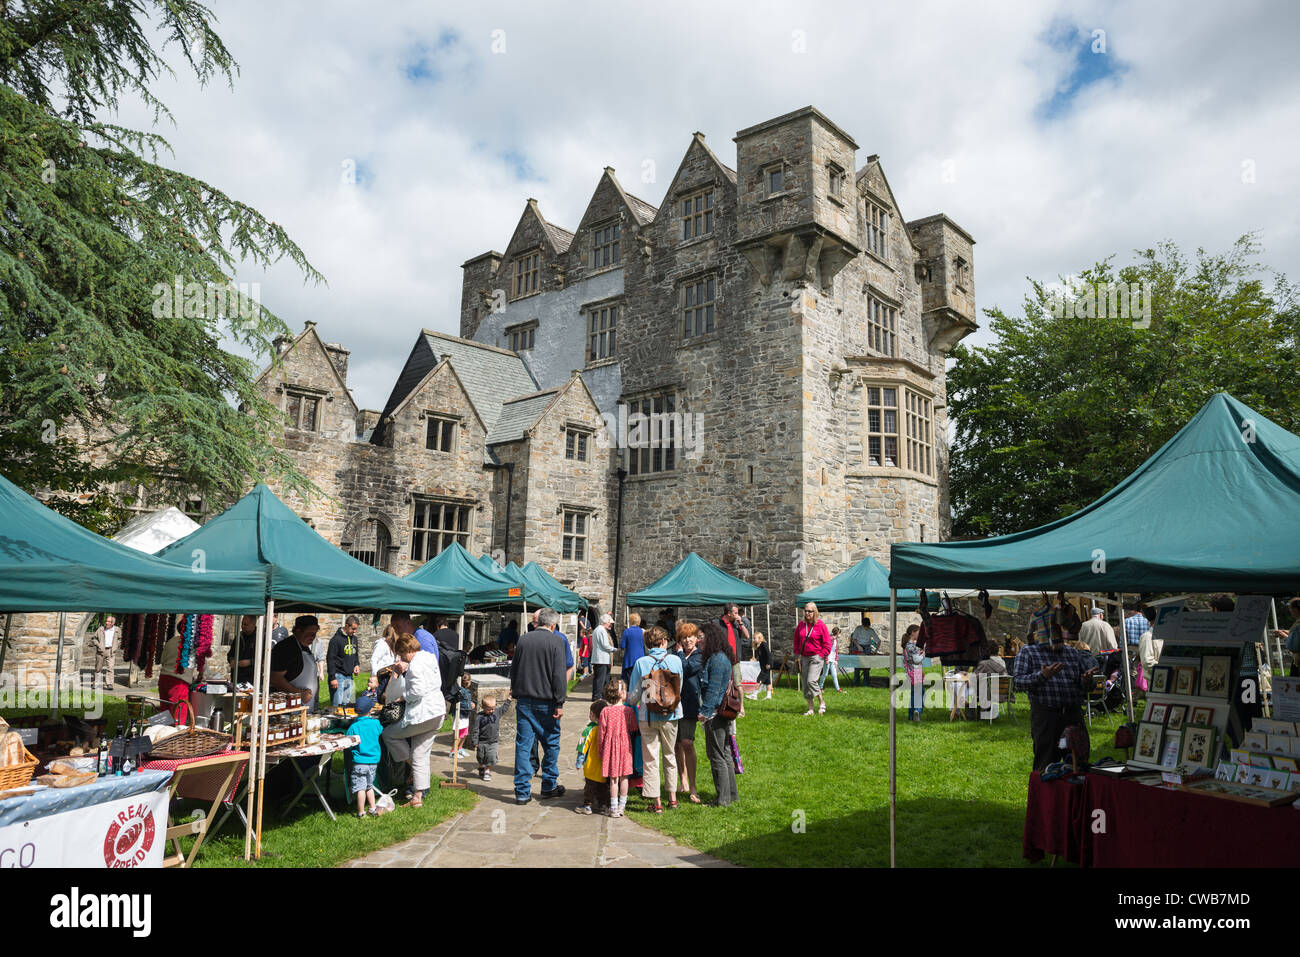 Local Market on the grounds of Donegal castle, Donegal Town, County Donegal, Republic of Ireland. - Stock Image